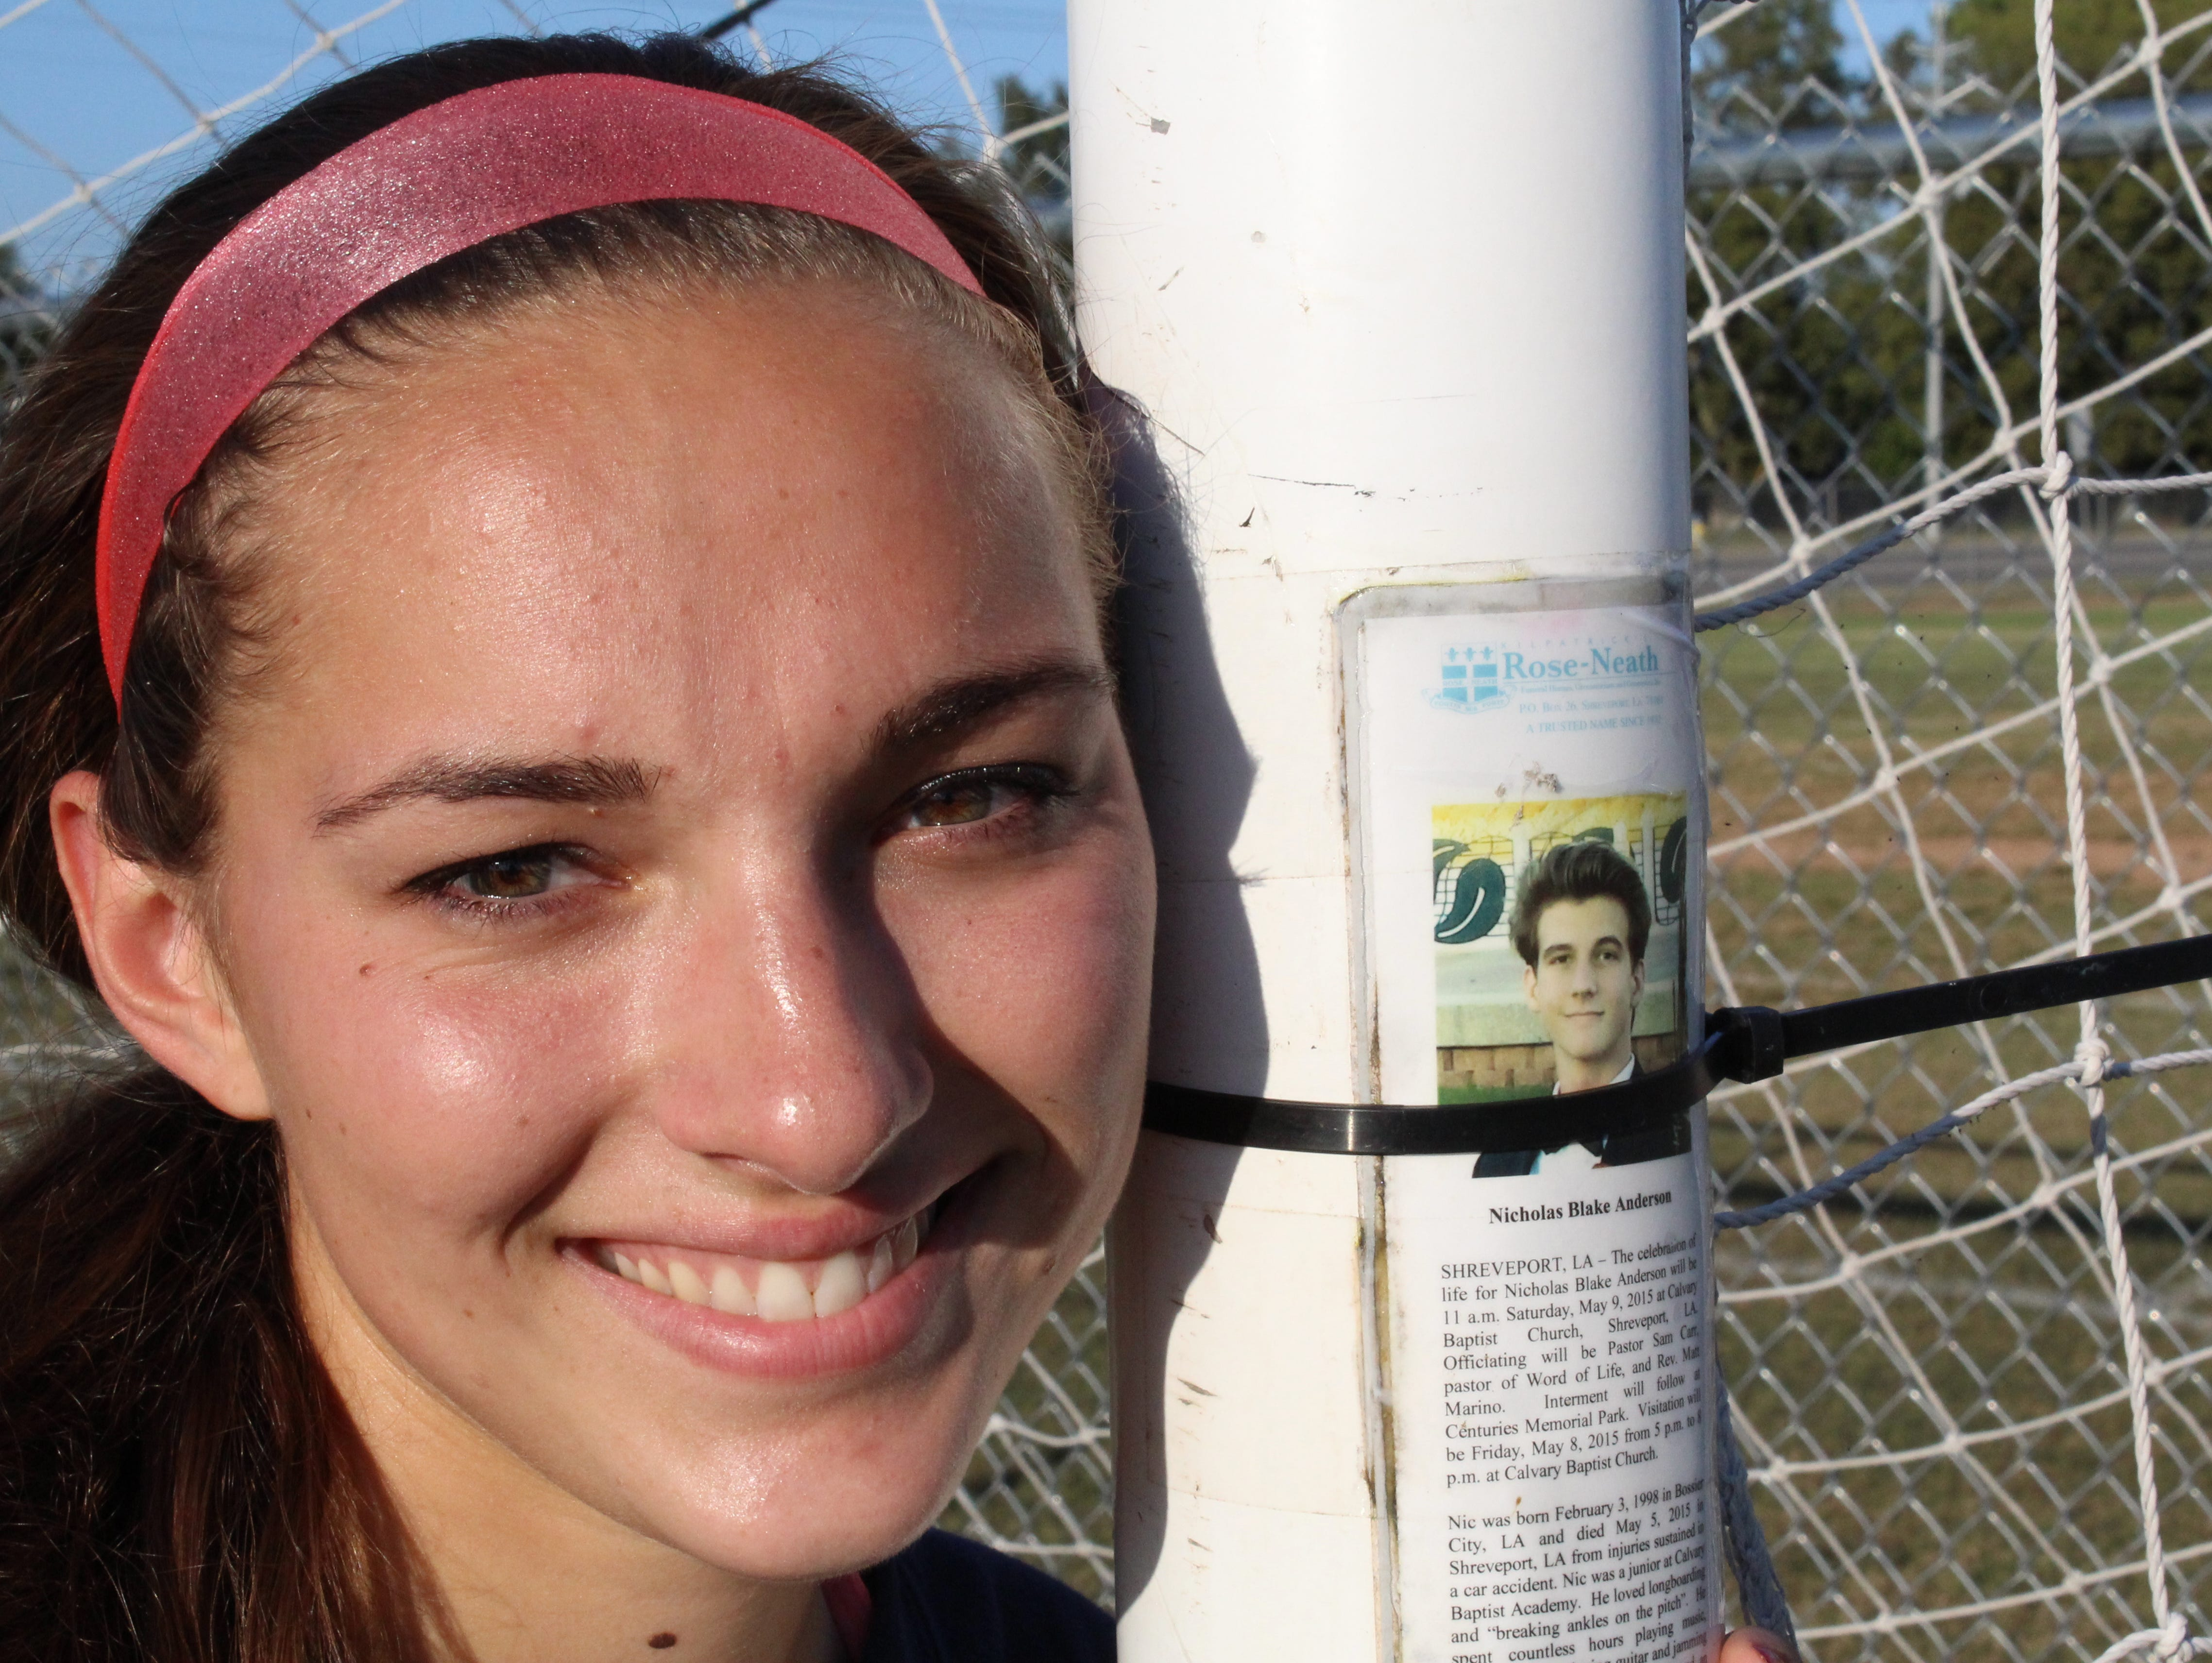 Oakland goalkeeper Emma Grace Goldman keeps a reminder of her step brother on a goalpost. He died this past spring.